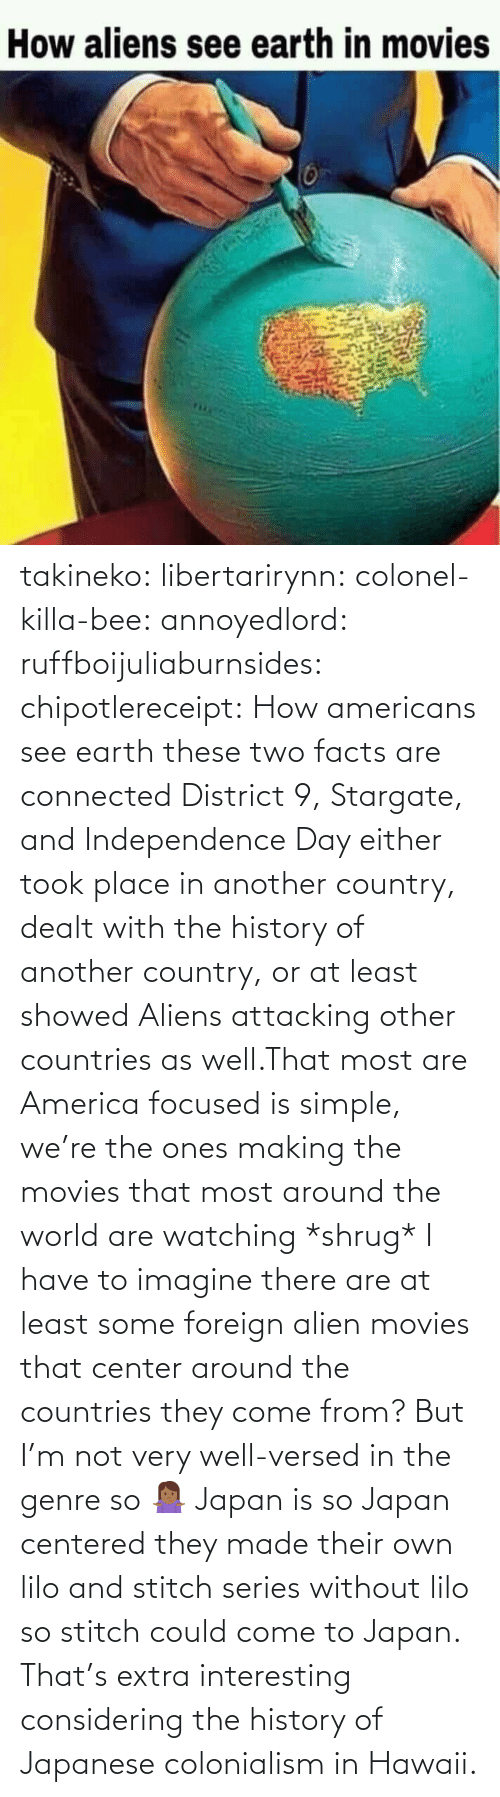 Japan: takineko:  libertarirynn:  colonel-killa-bee:  annoyedlord: ruffboijuliaburnsides:  chipotlereceipt: How americans see earth these two facts are connected     District 9, Stargate, and Independence Day either took place in another country, dealt with the history of another country, or at least showed Aliens attacking other countries as well.That most are America focused is simple, we're the ones making the movies that most around the world are watching *shrug*   I have to imagine there are at least some foreign alien movies that center around the countries they come from? But I'm not very well-versed in the genre so 🤷🏾‍♀️   Japan is so Japan centered they made their own lilo and stitch series without lilo so stitch could come to Japan.    That's extra interesting considering the history of Japanese colonialism in Hawaii.